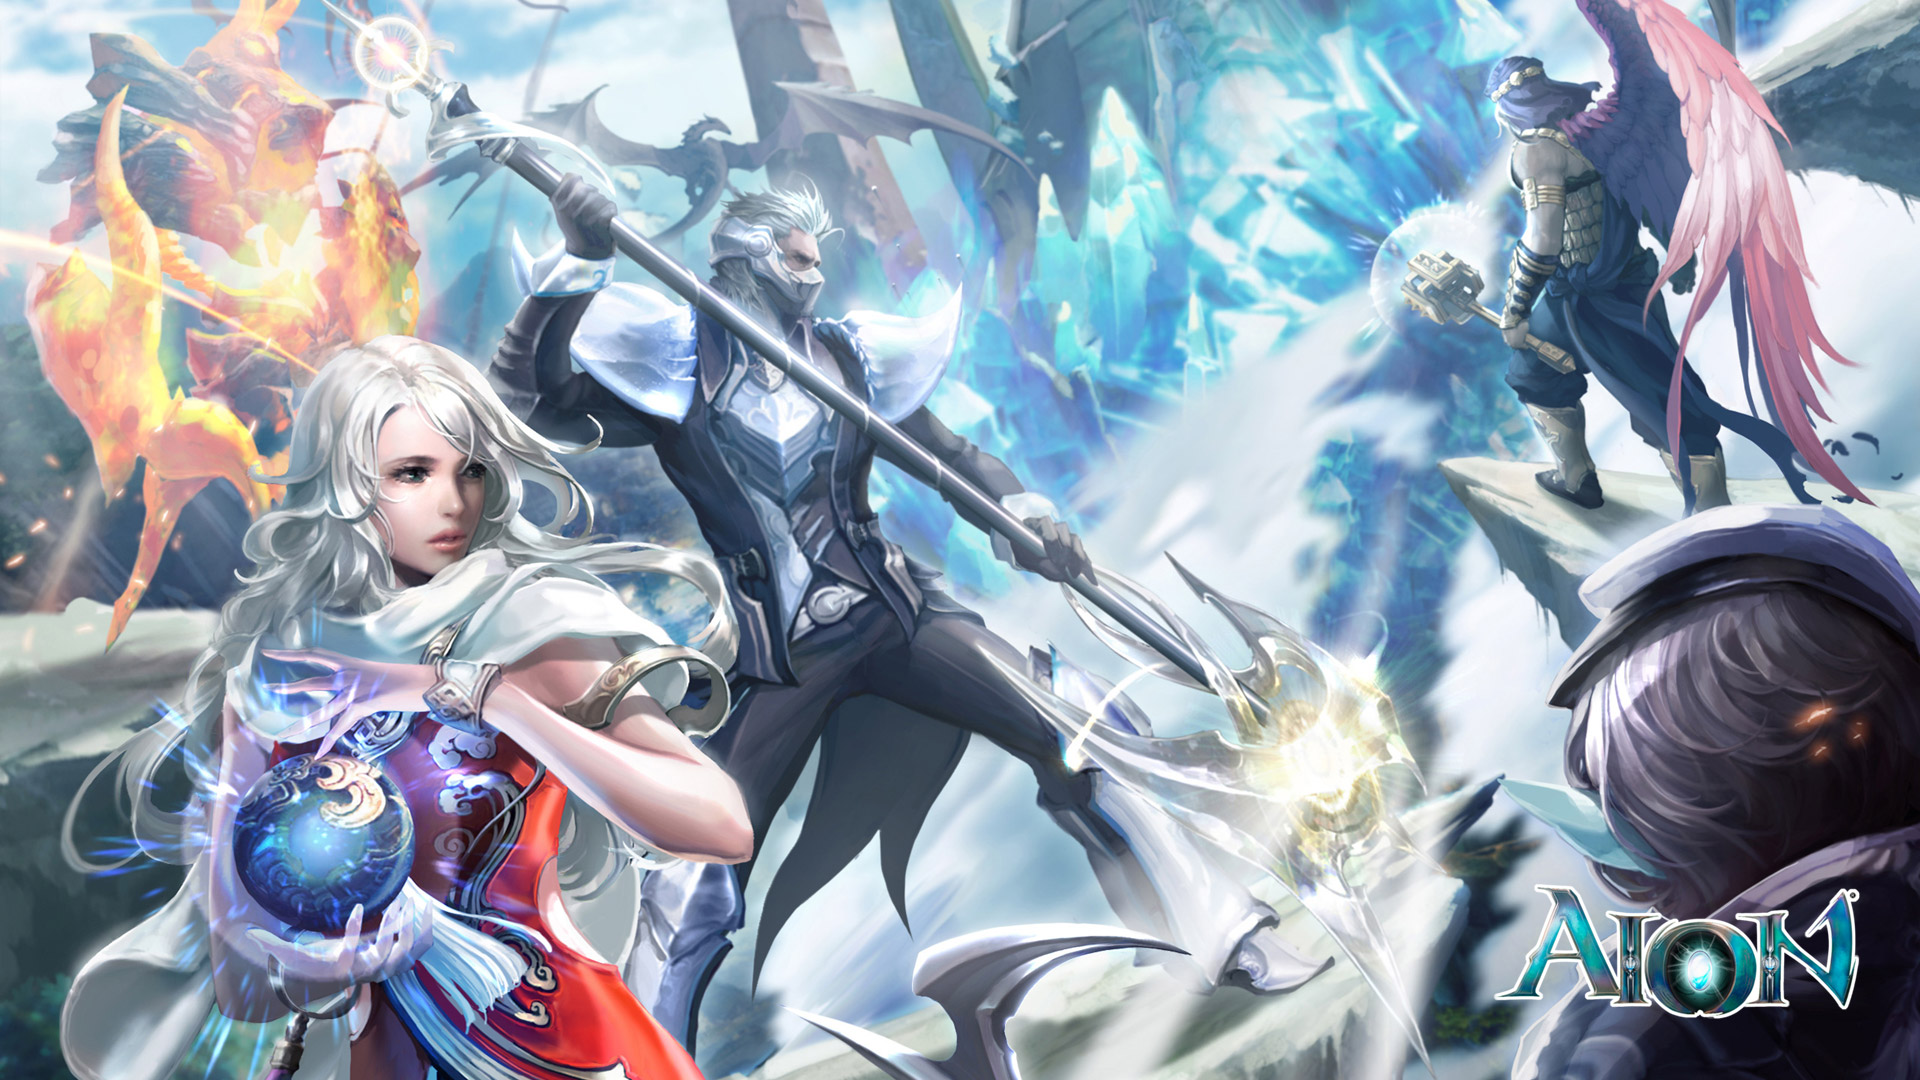 Free Aion: The Tower of Eternity Wallpaper in 1920x1080